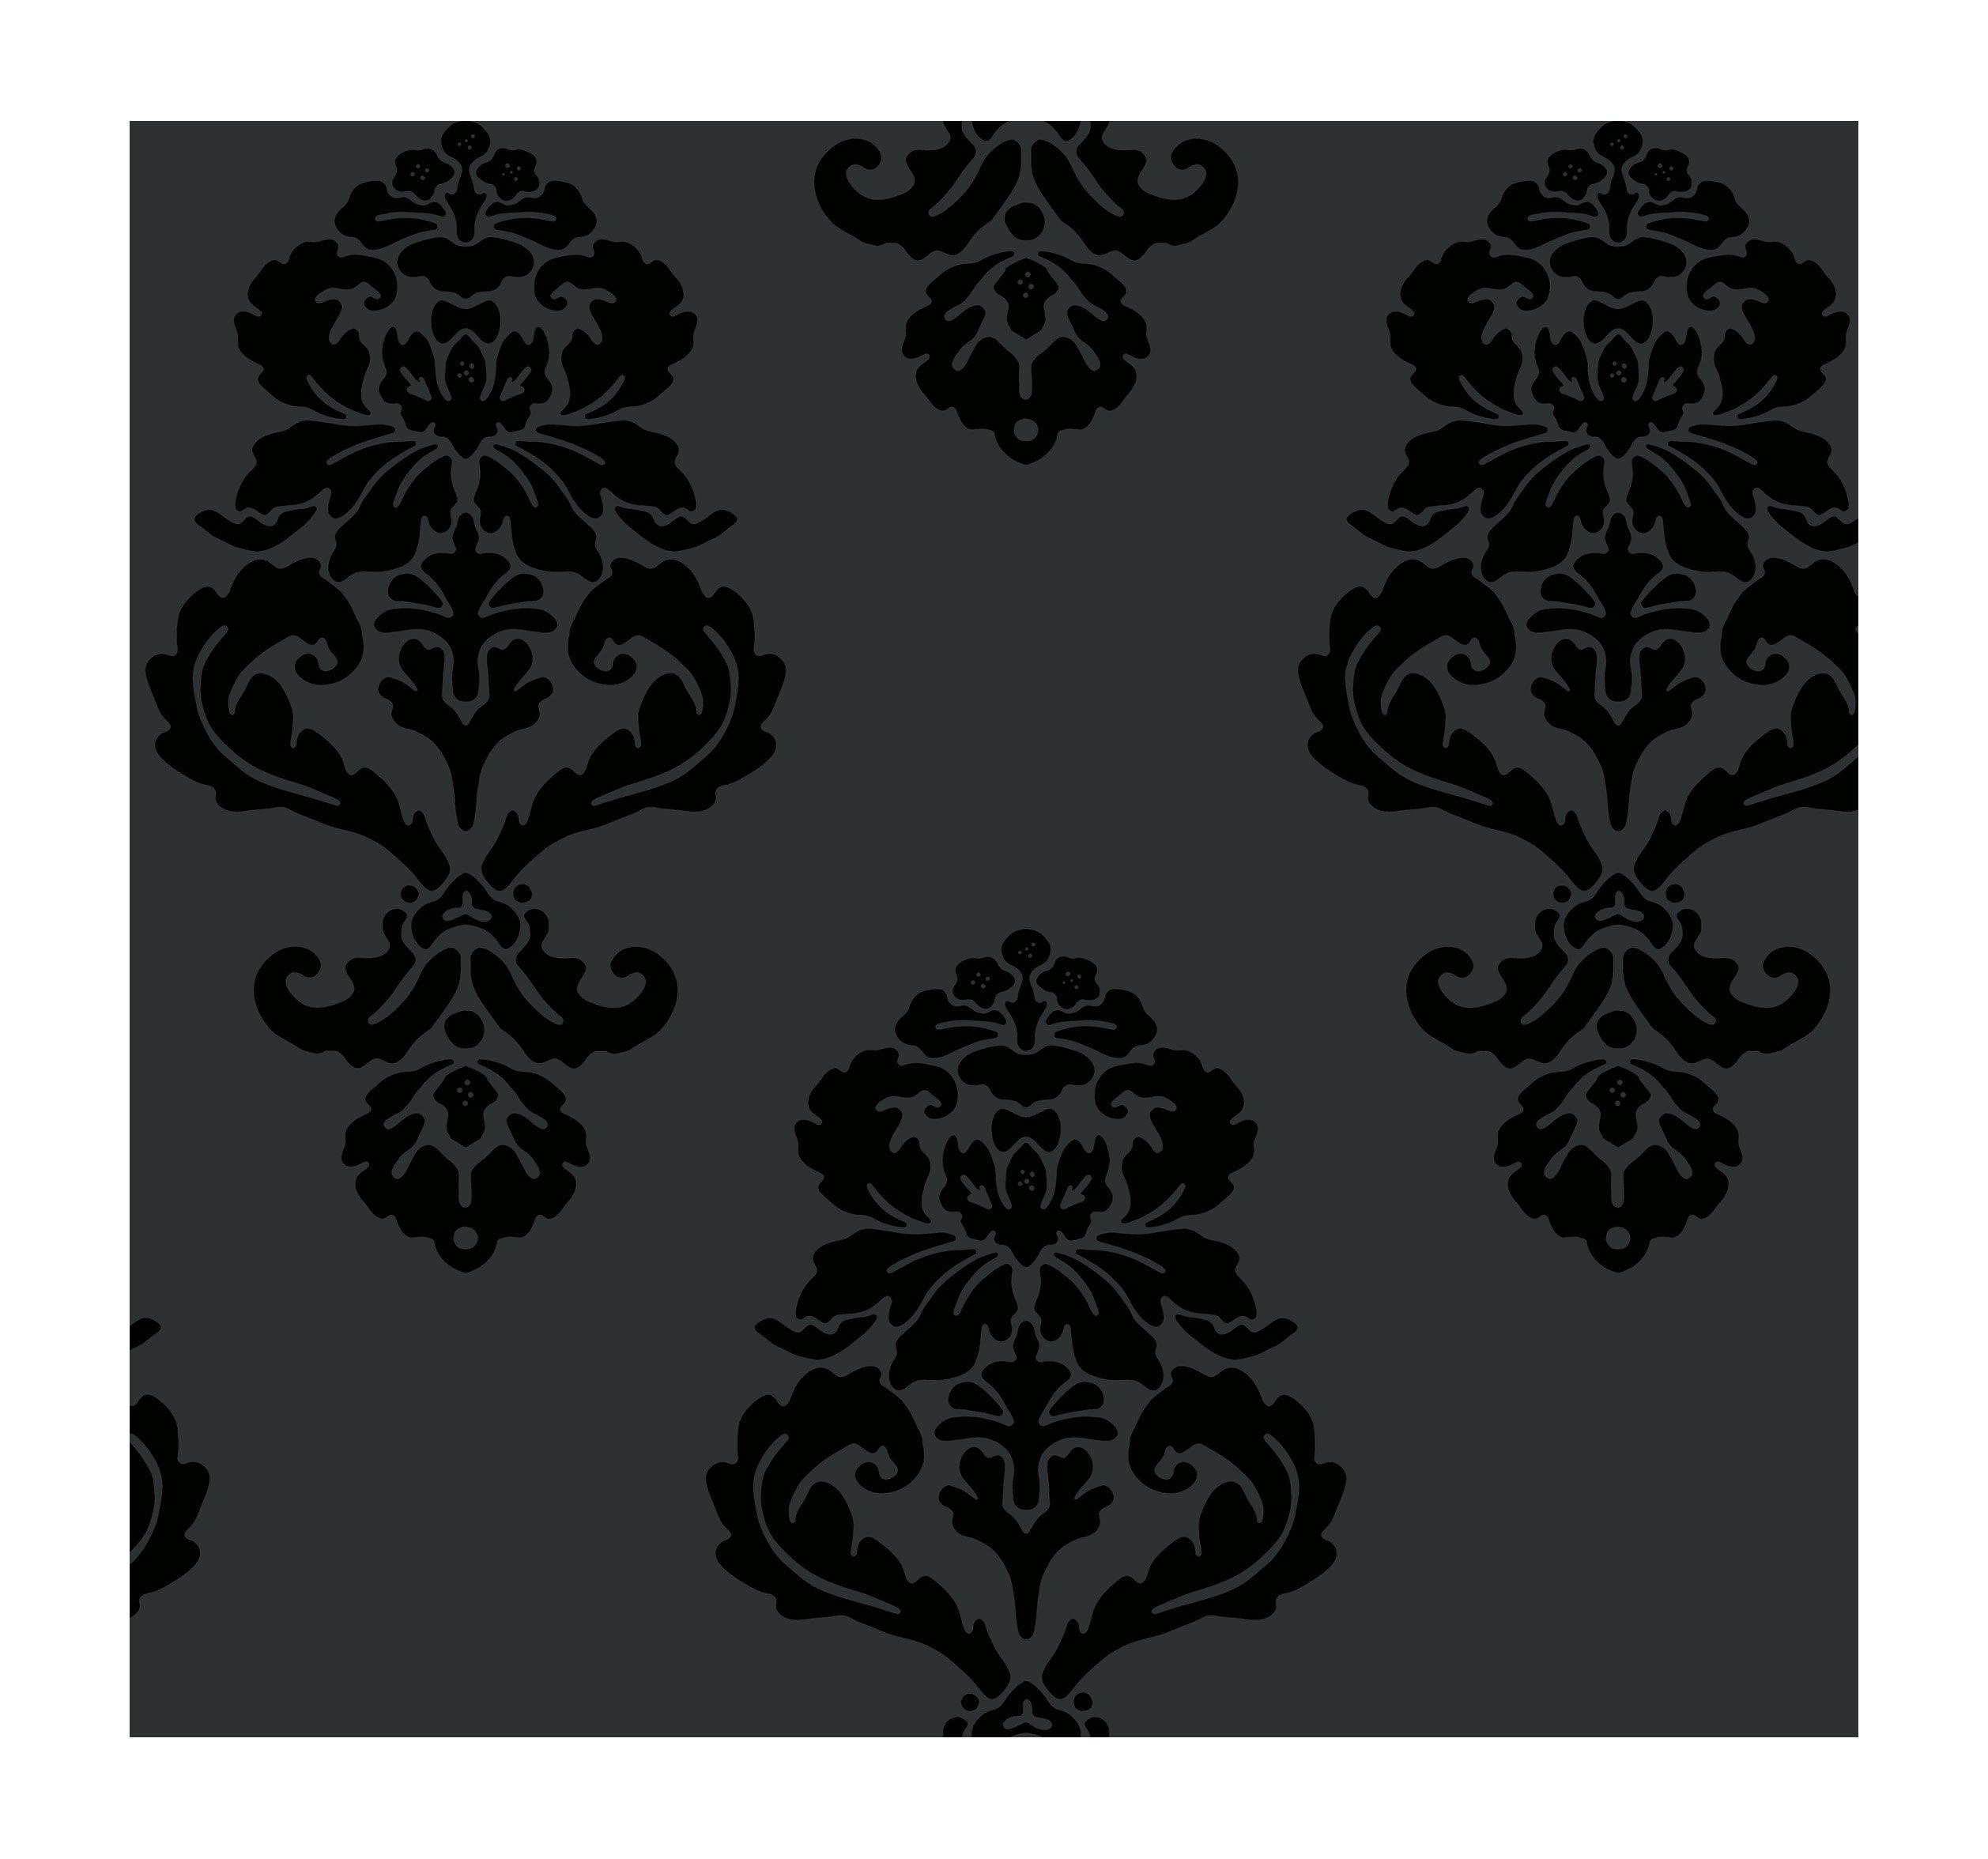 York Wallcoverings Tres Chic BL0397 Graphic Damask Wallpaper, Blacks - Ultra Removable